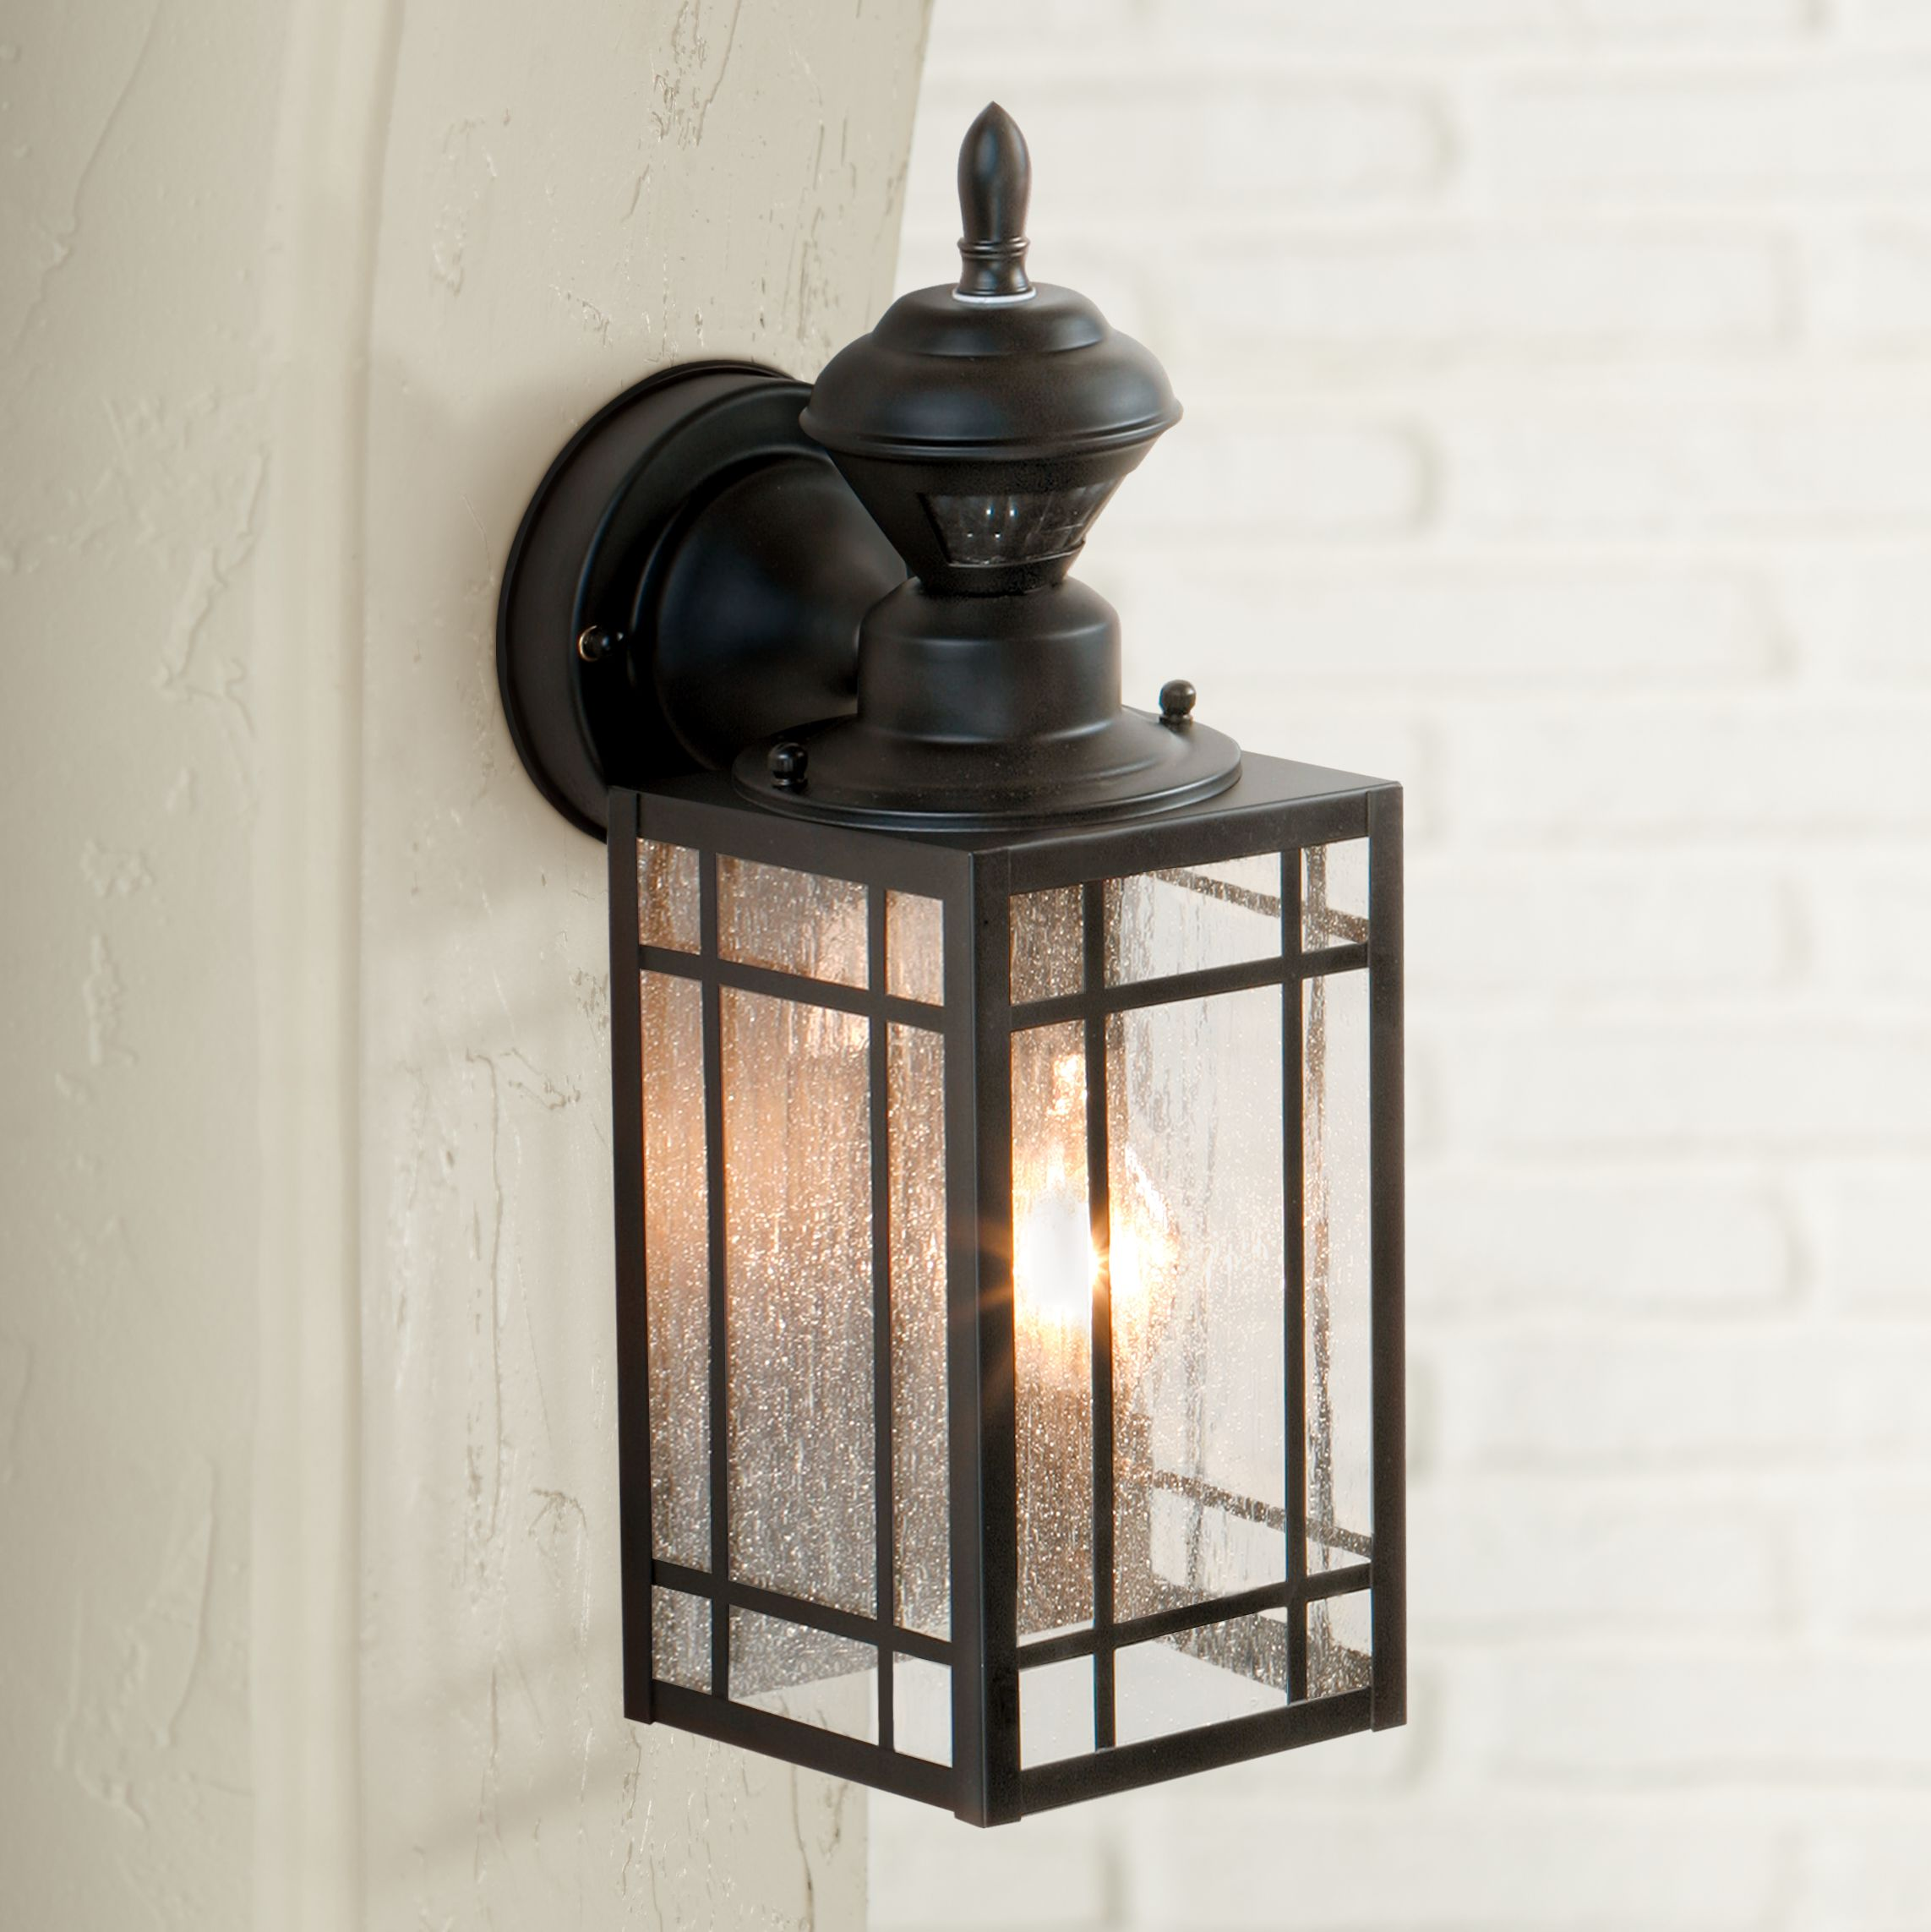 Dusk To Dawn Porch Light Home Decor